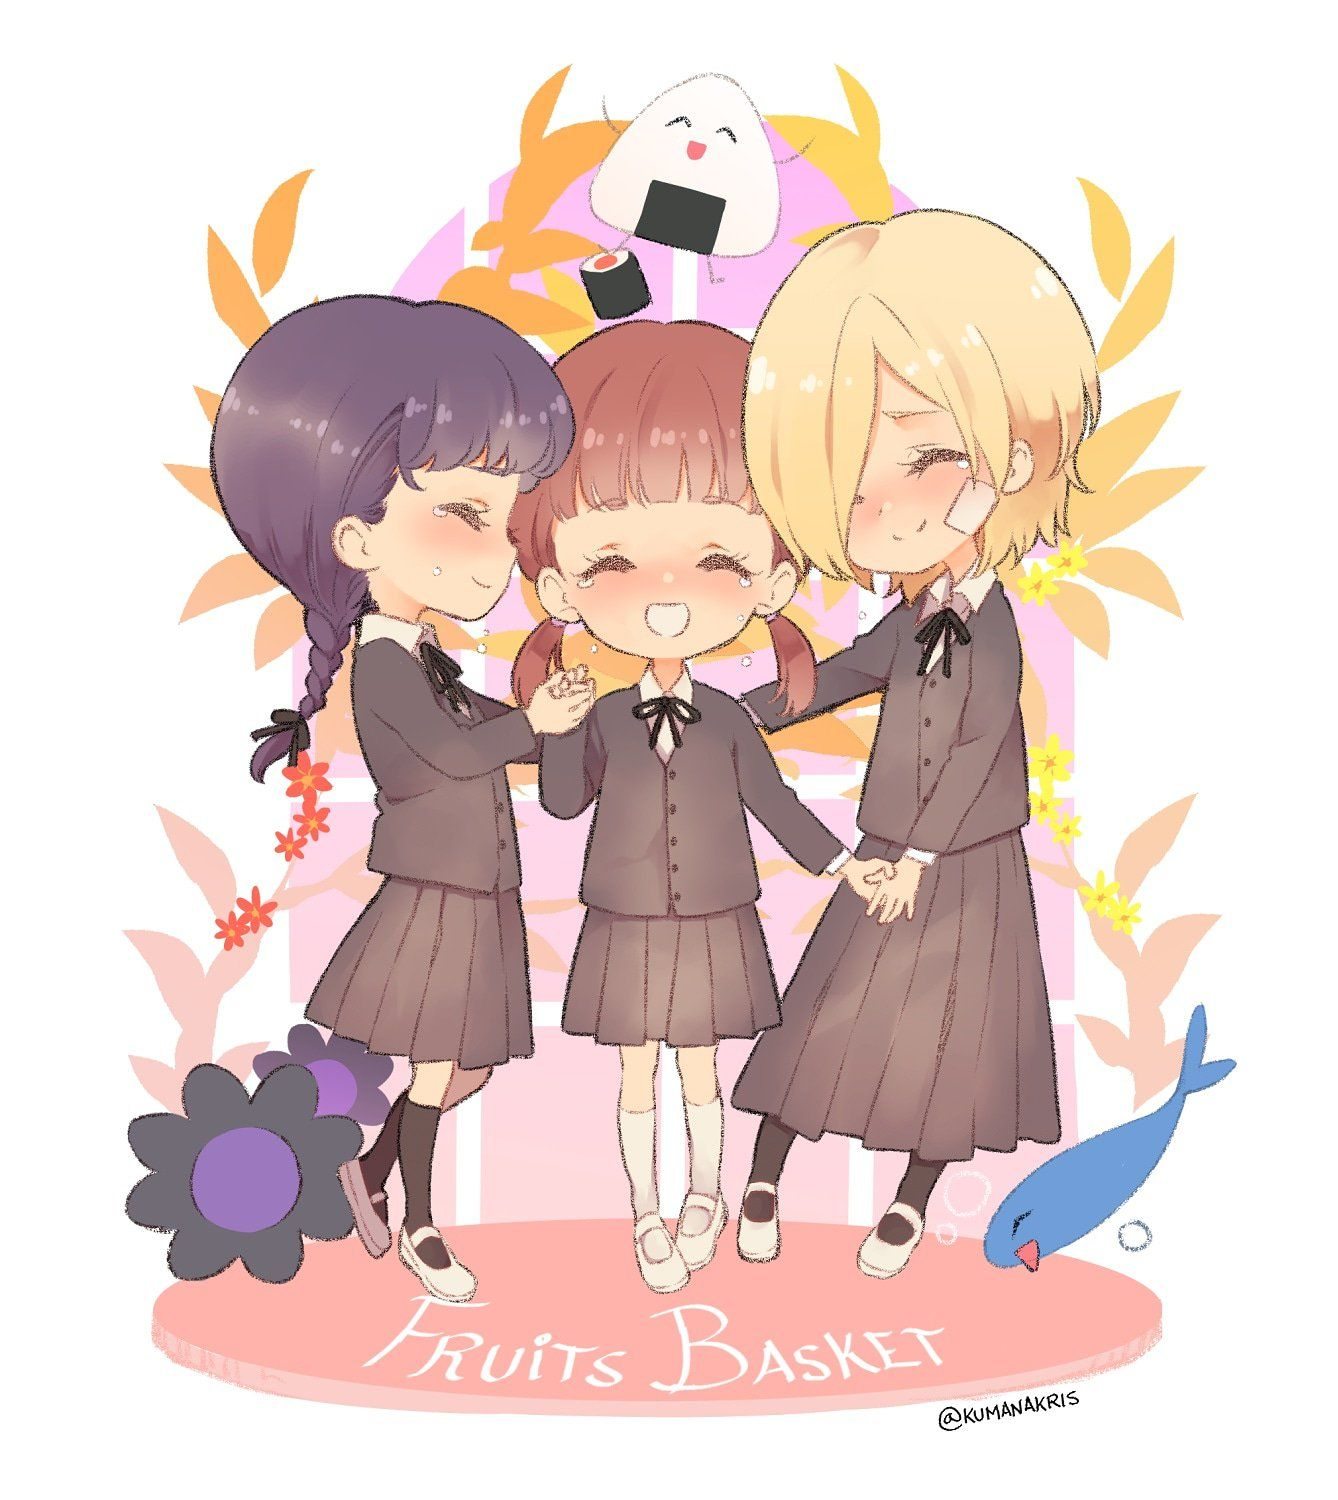 Twitter (With images) Fruits basket